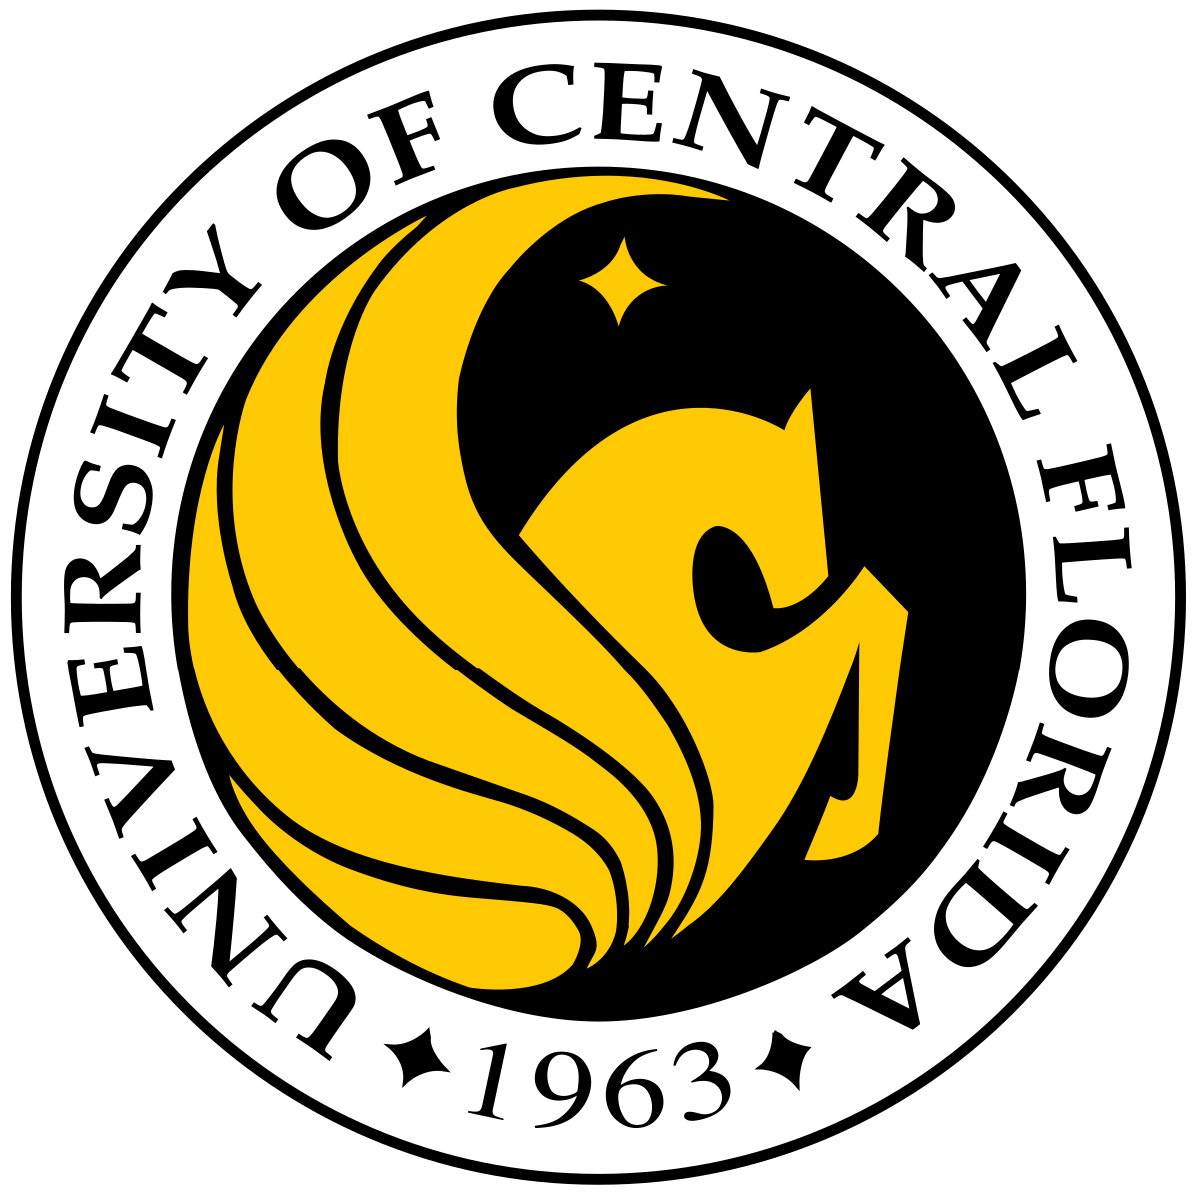 Central wikipedia . University of florida logo png freeuse download